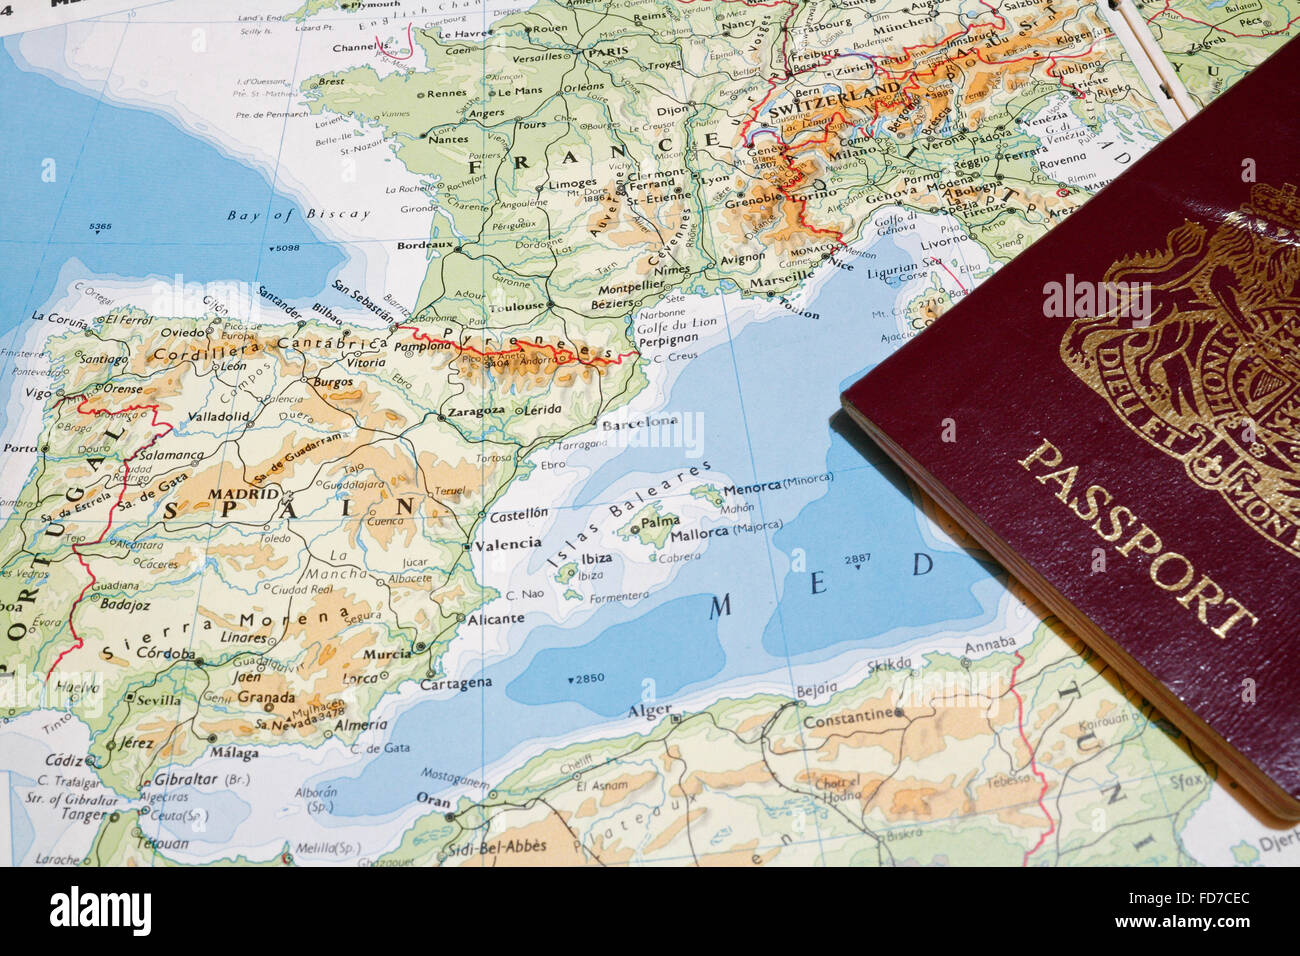 Map Of Western France.Passport And Map Of Western Mediterranean Showing Spain And France